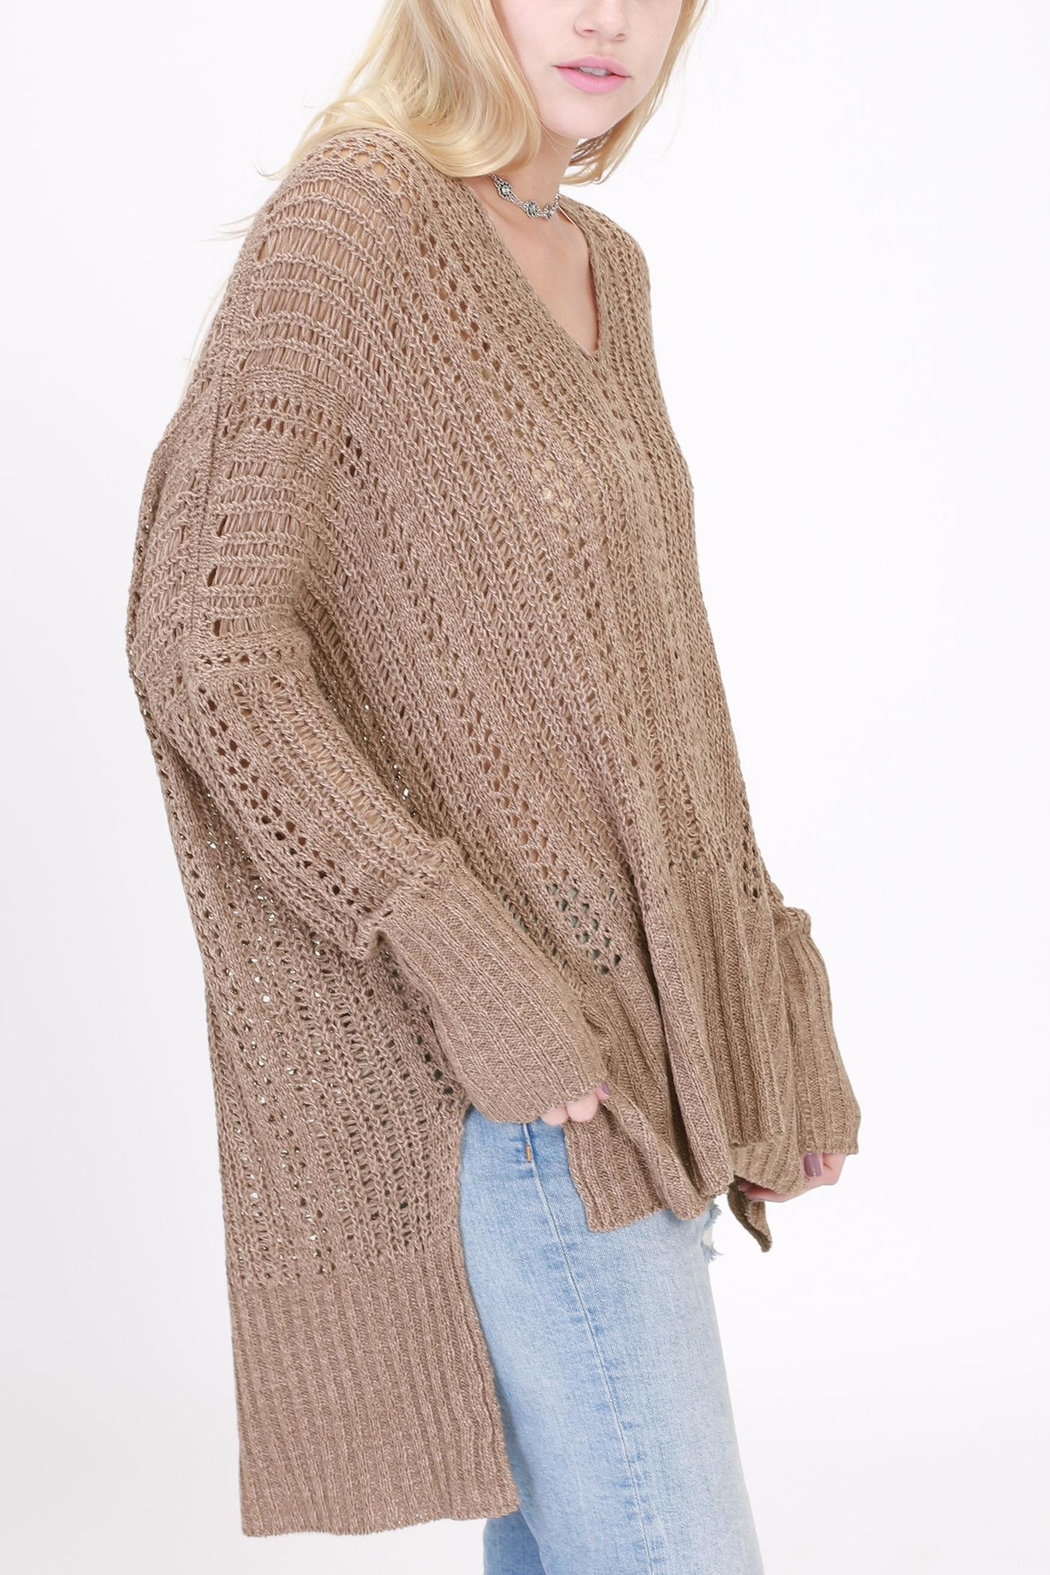 onetheland Knit Sweater - Front Full Image